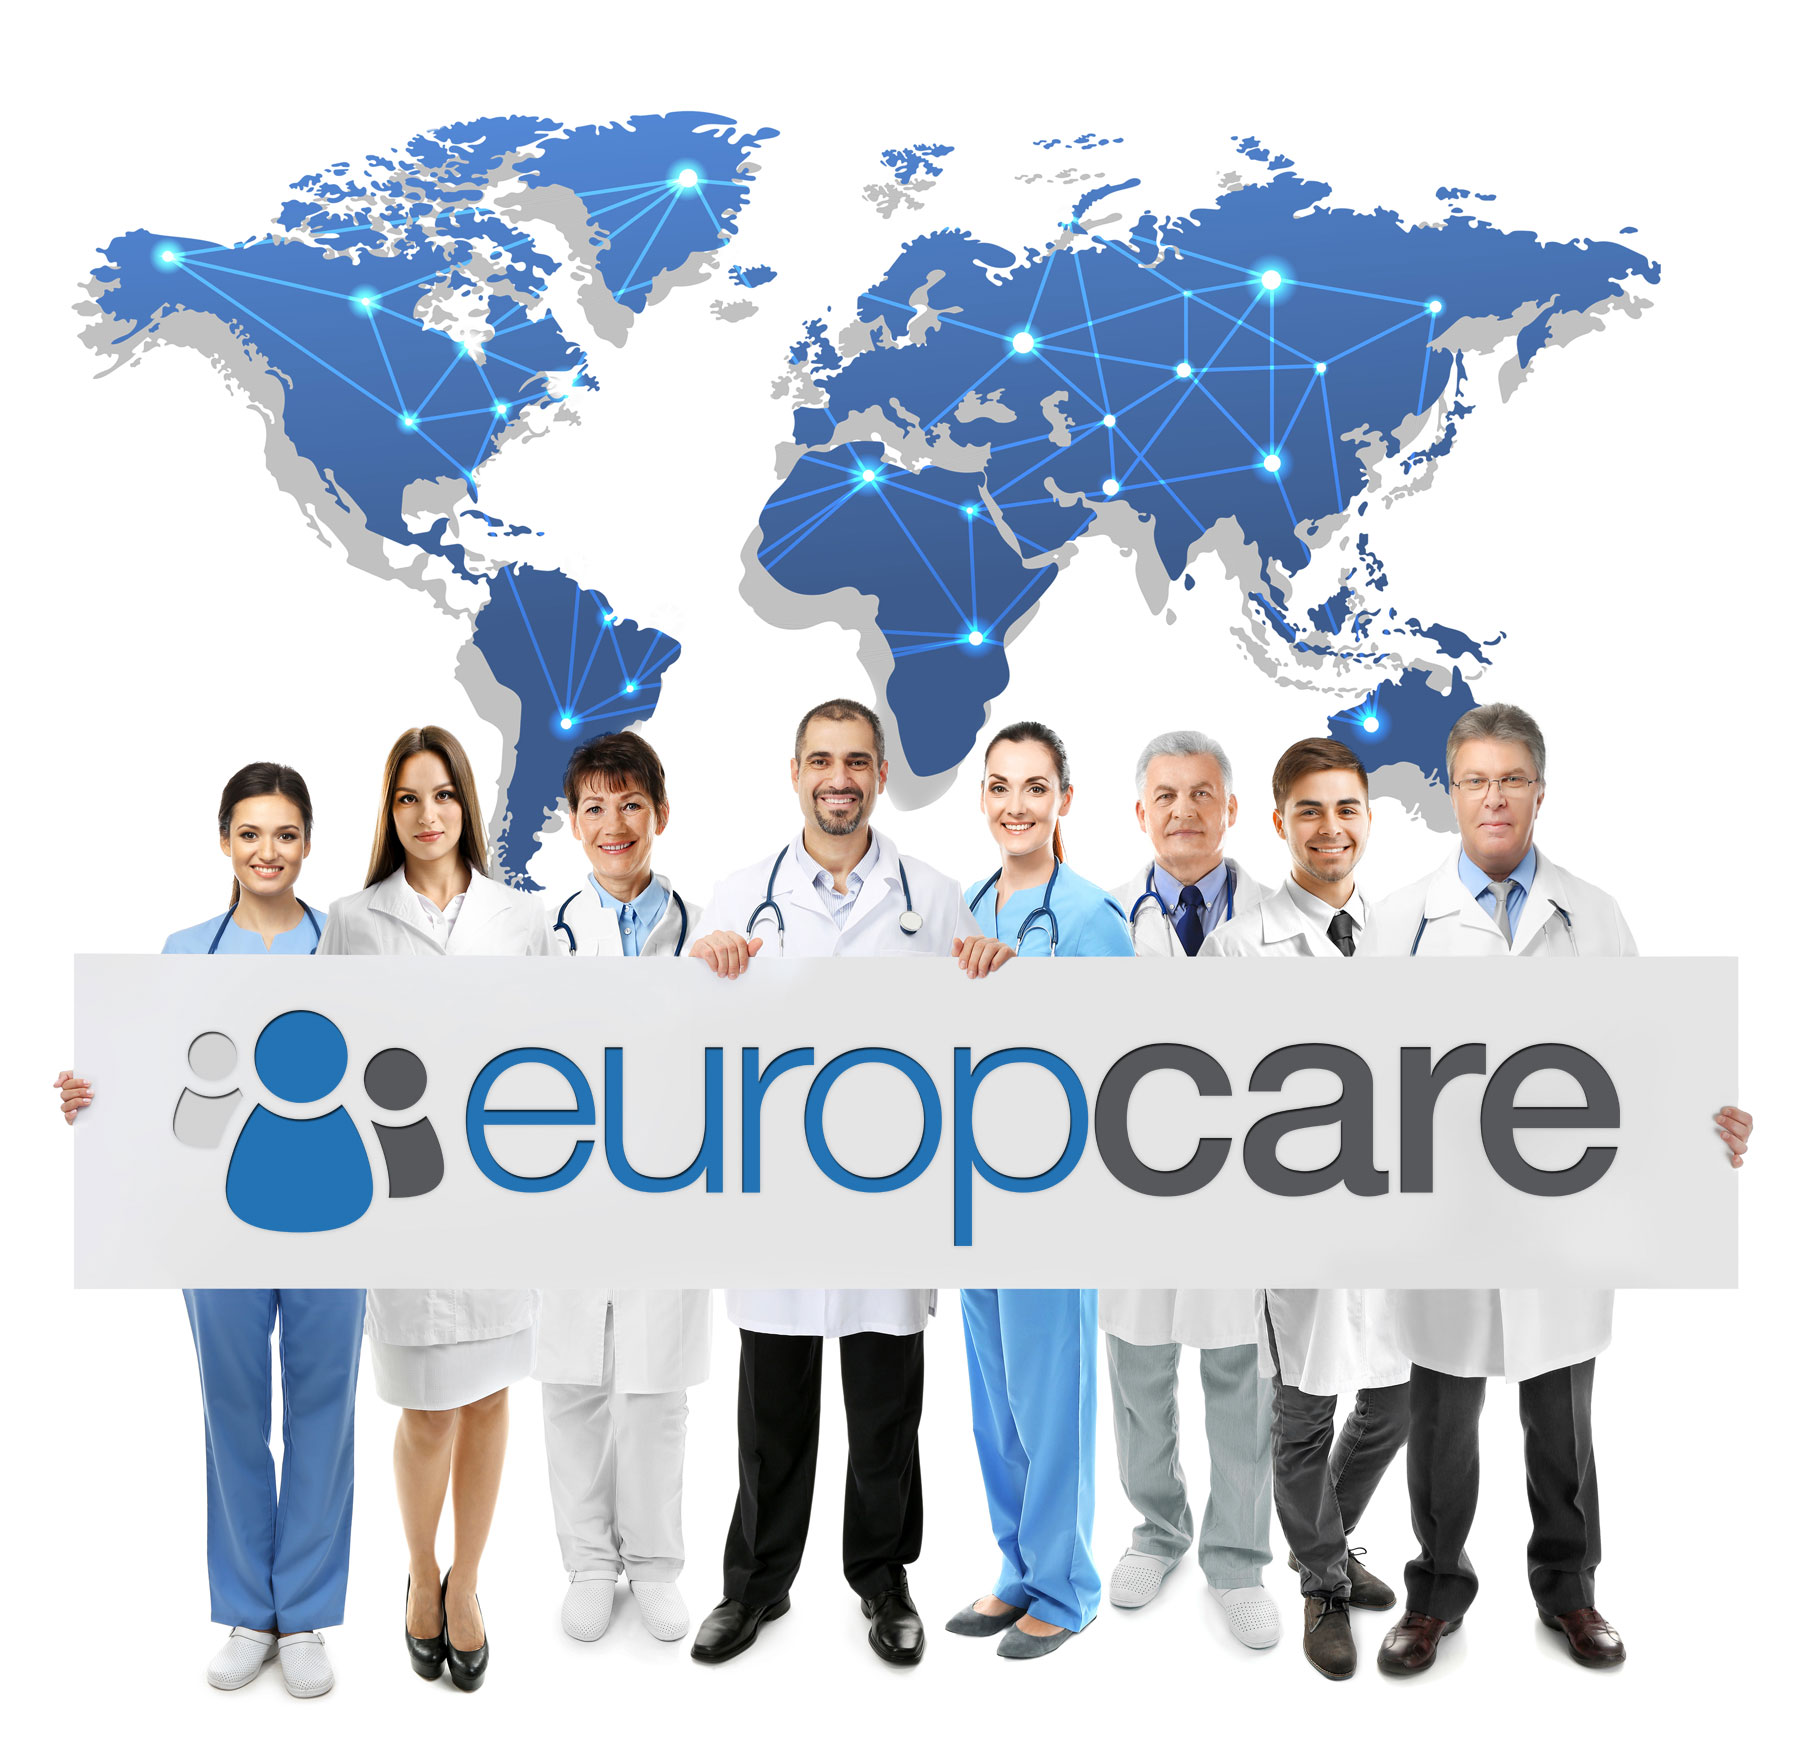 welcome to europcare